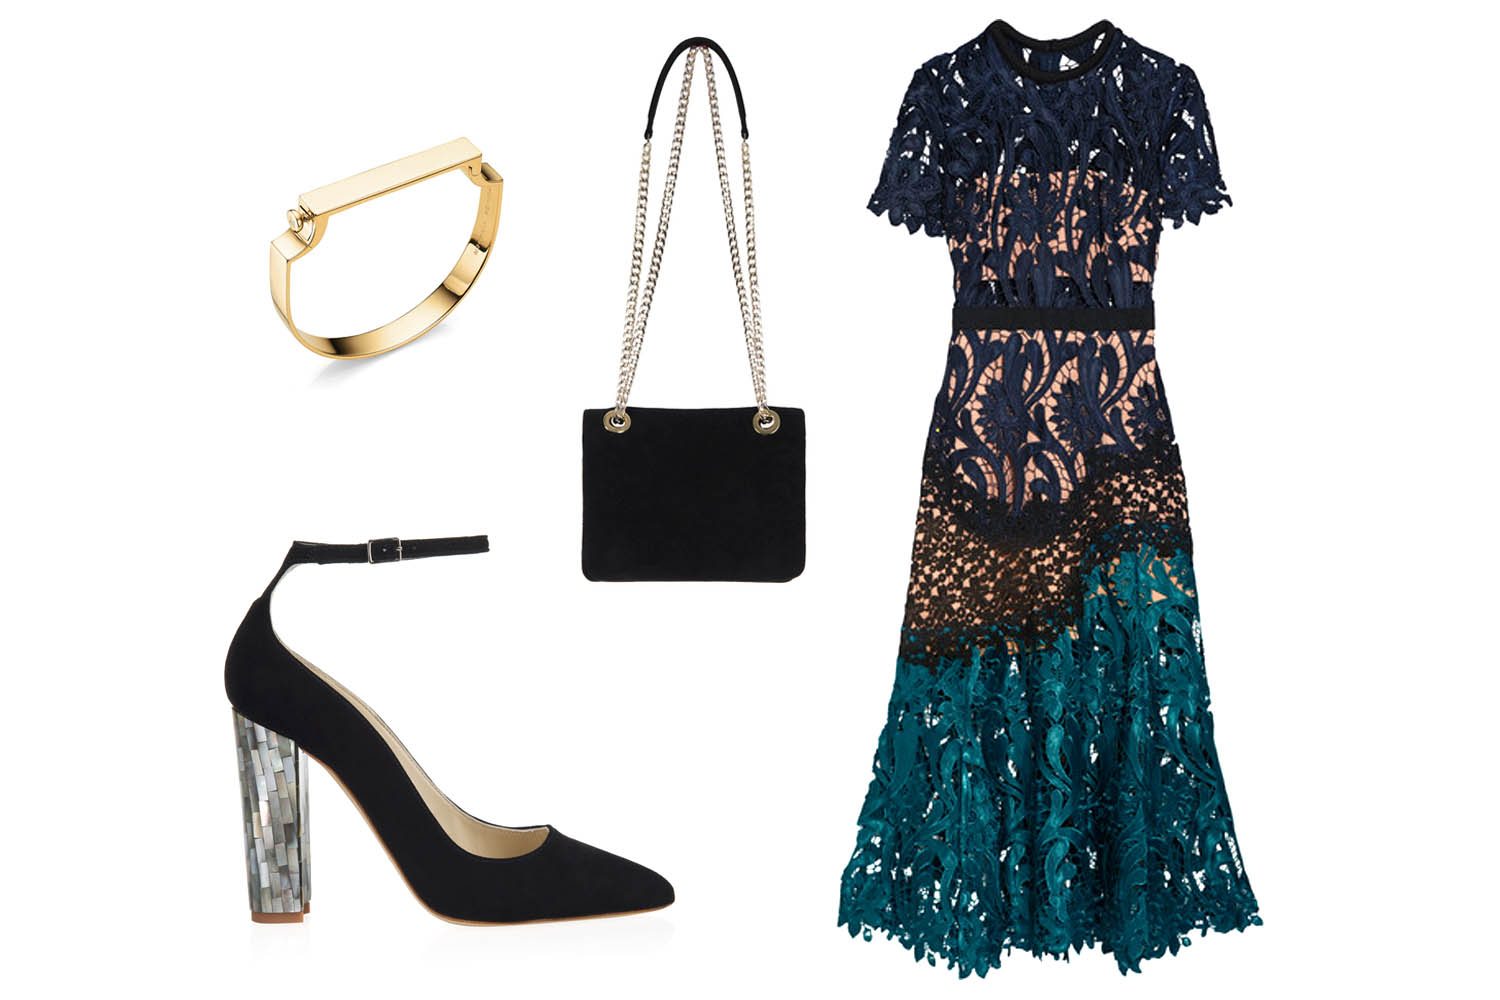 Self Portrait lace midi dress with Micola Noir black shoes and Kate Petite bag paired with a Monika Vinadr Gold Bangle